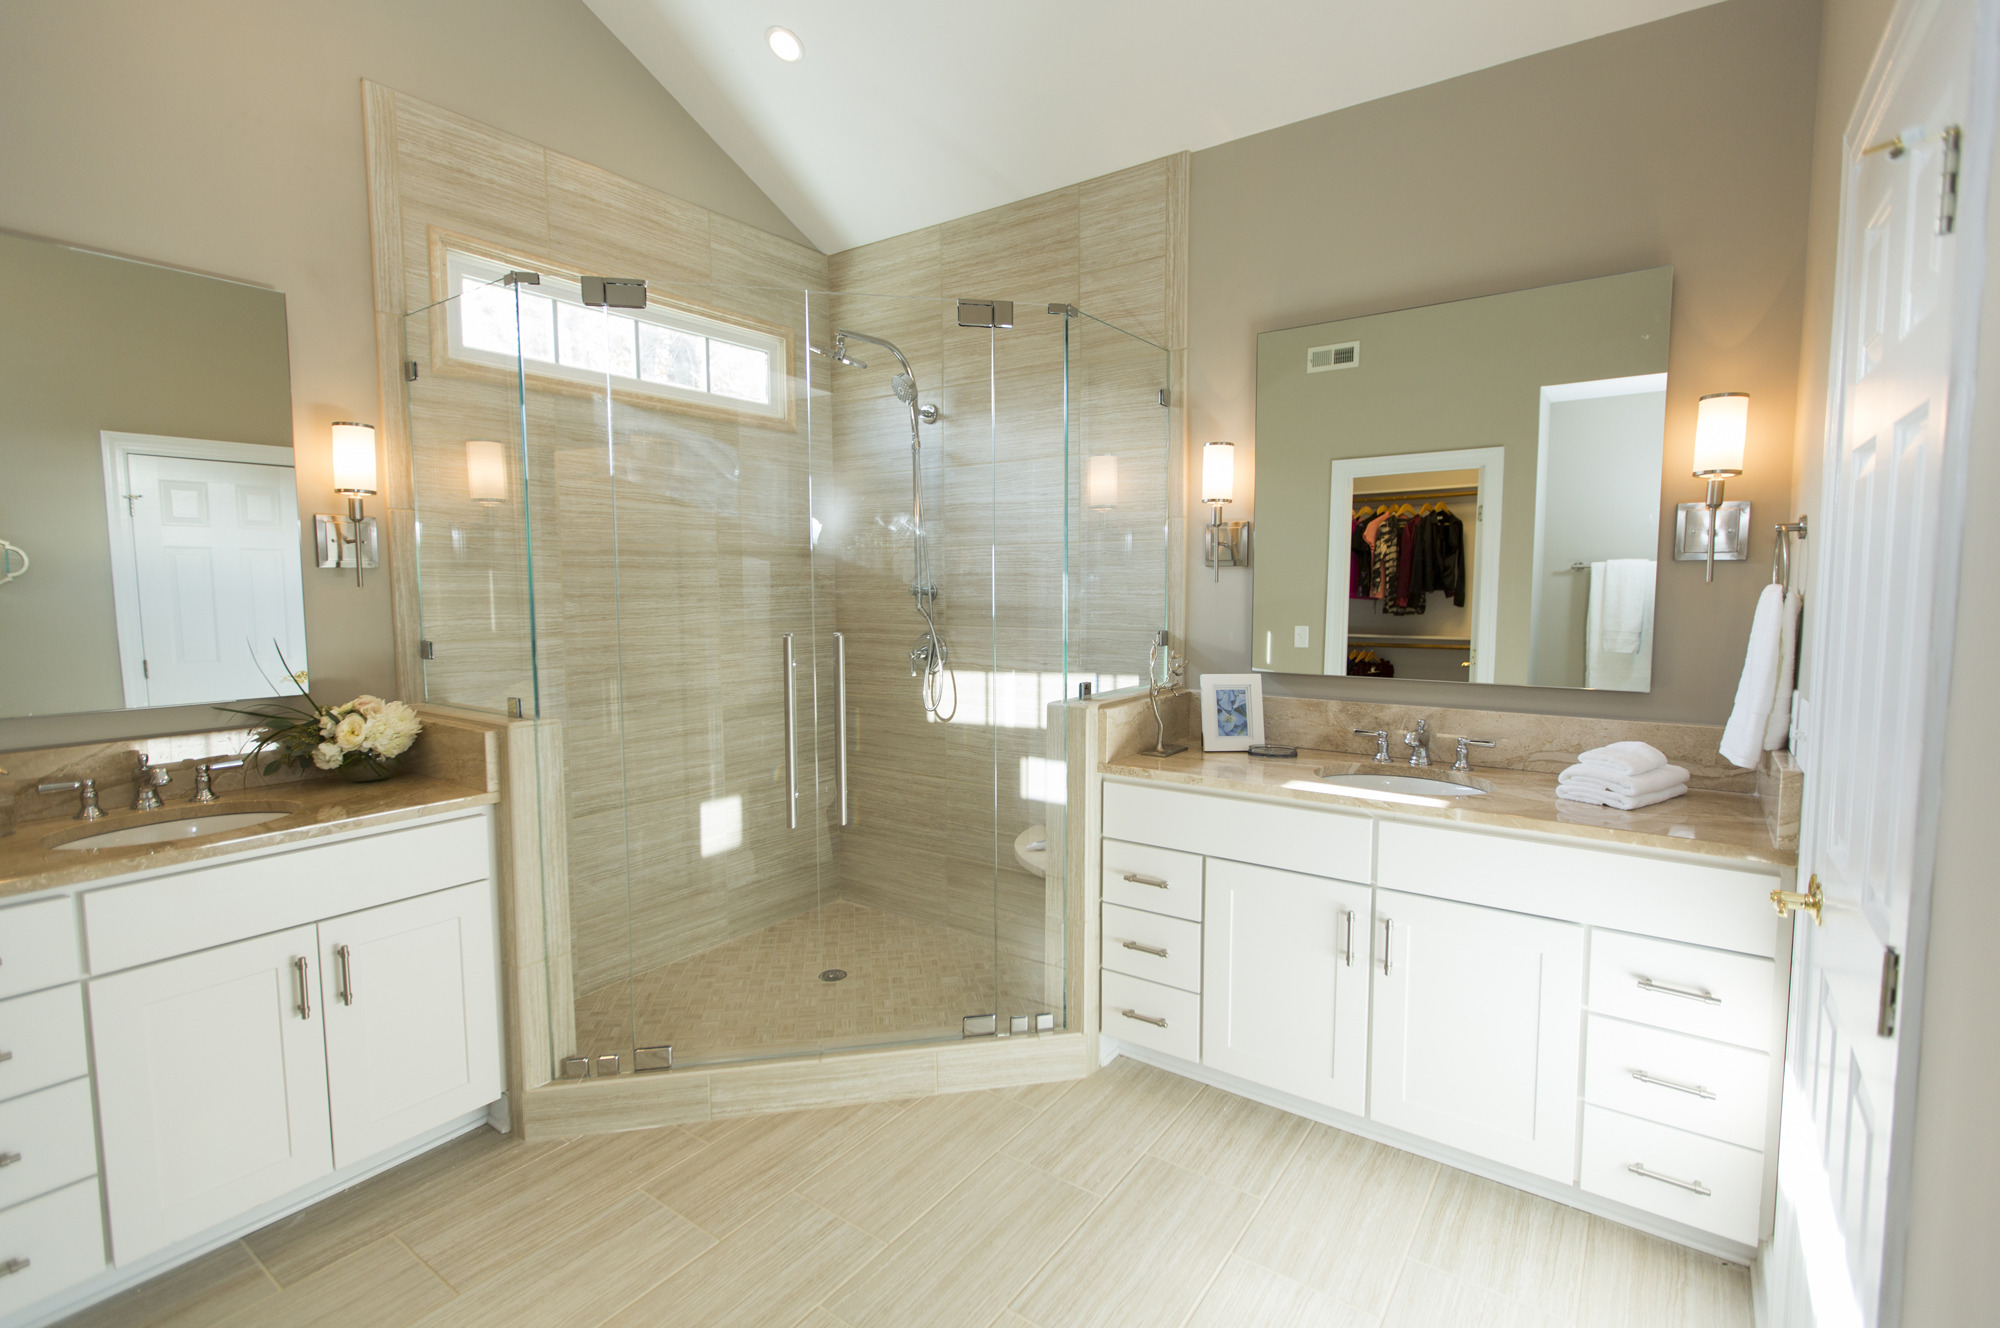 Frameless Glass Shower Doors Raleigh Nc Mia Shower Doors: hgtv bathroom remodel pictures